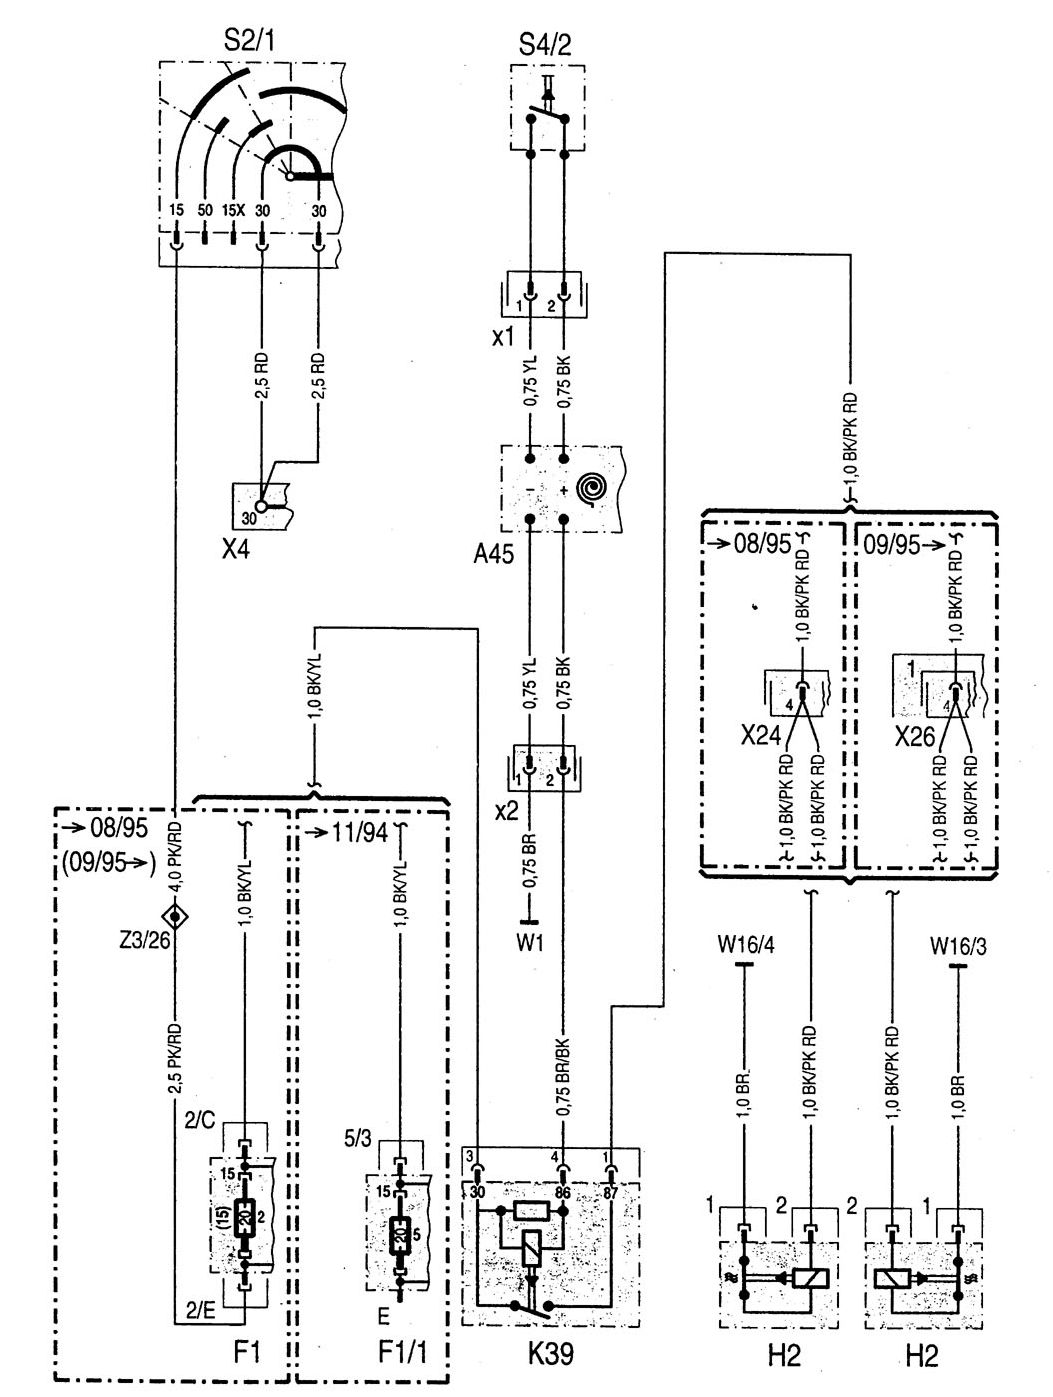 [DIAGRAM] 99 Gmc Sierra Horn Wiring Diagram FULL Version